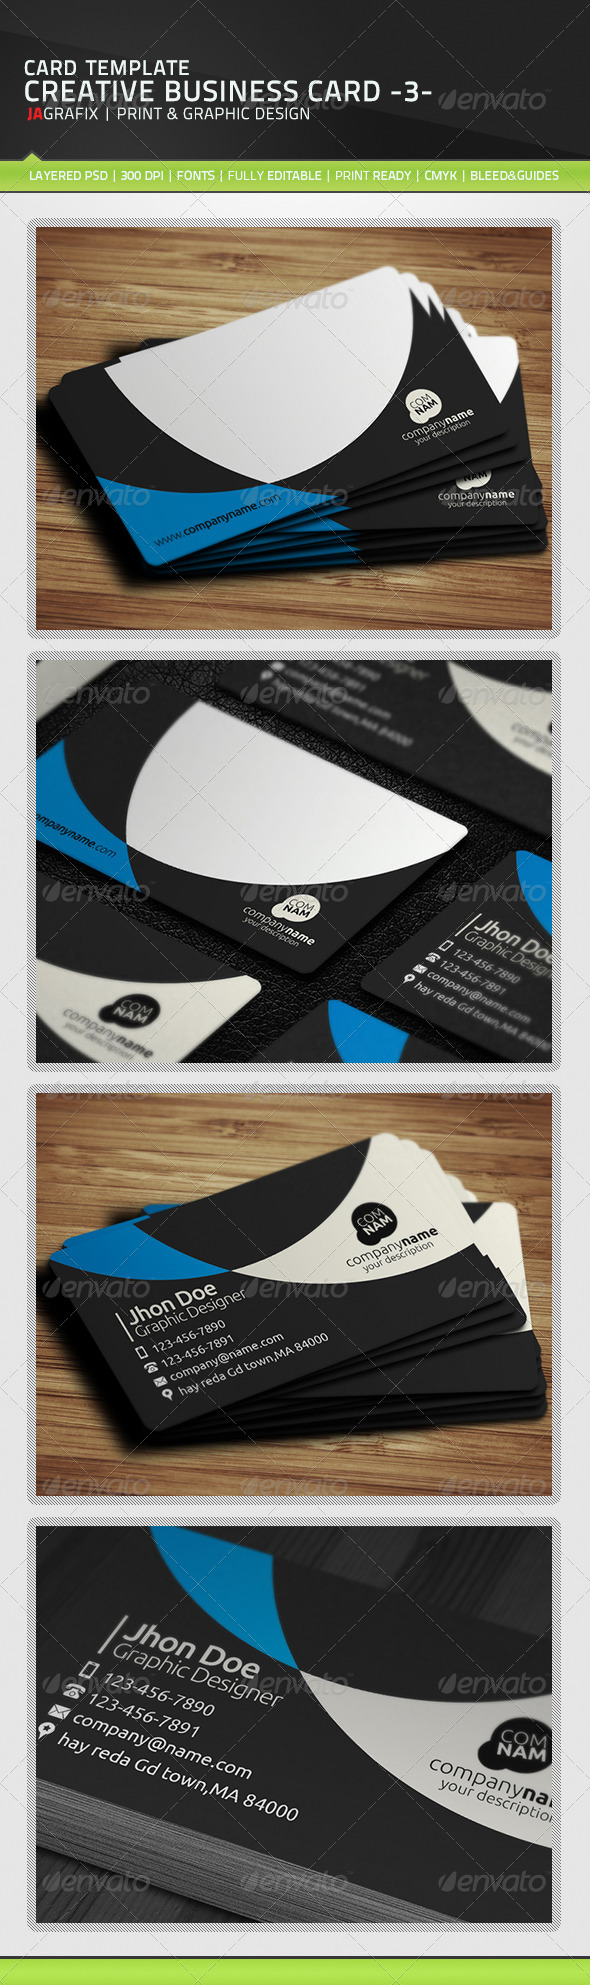 GraphicRiver Creative Business Card 3- 5976822